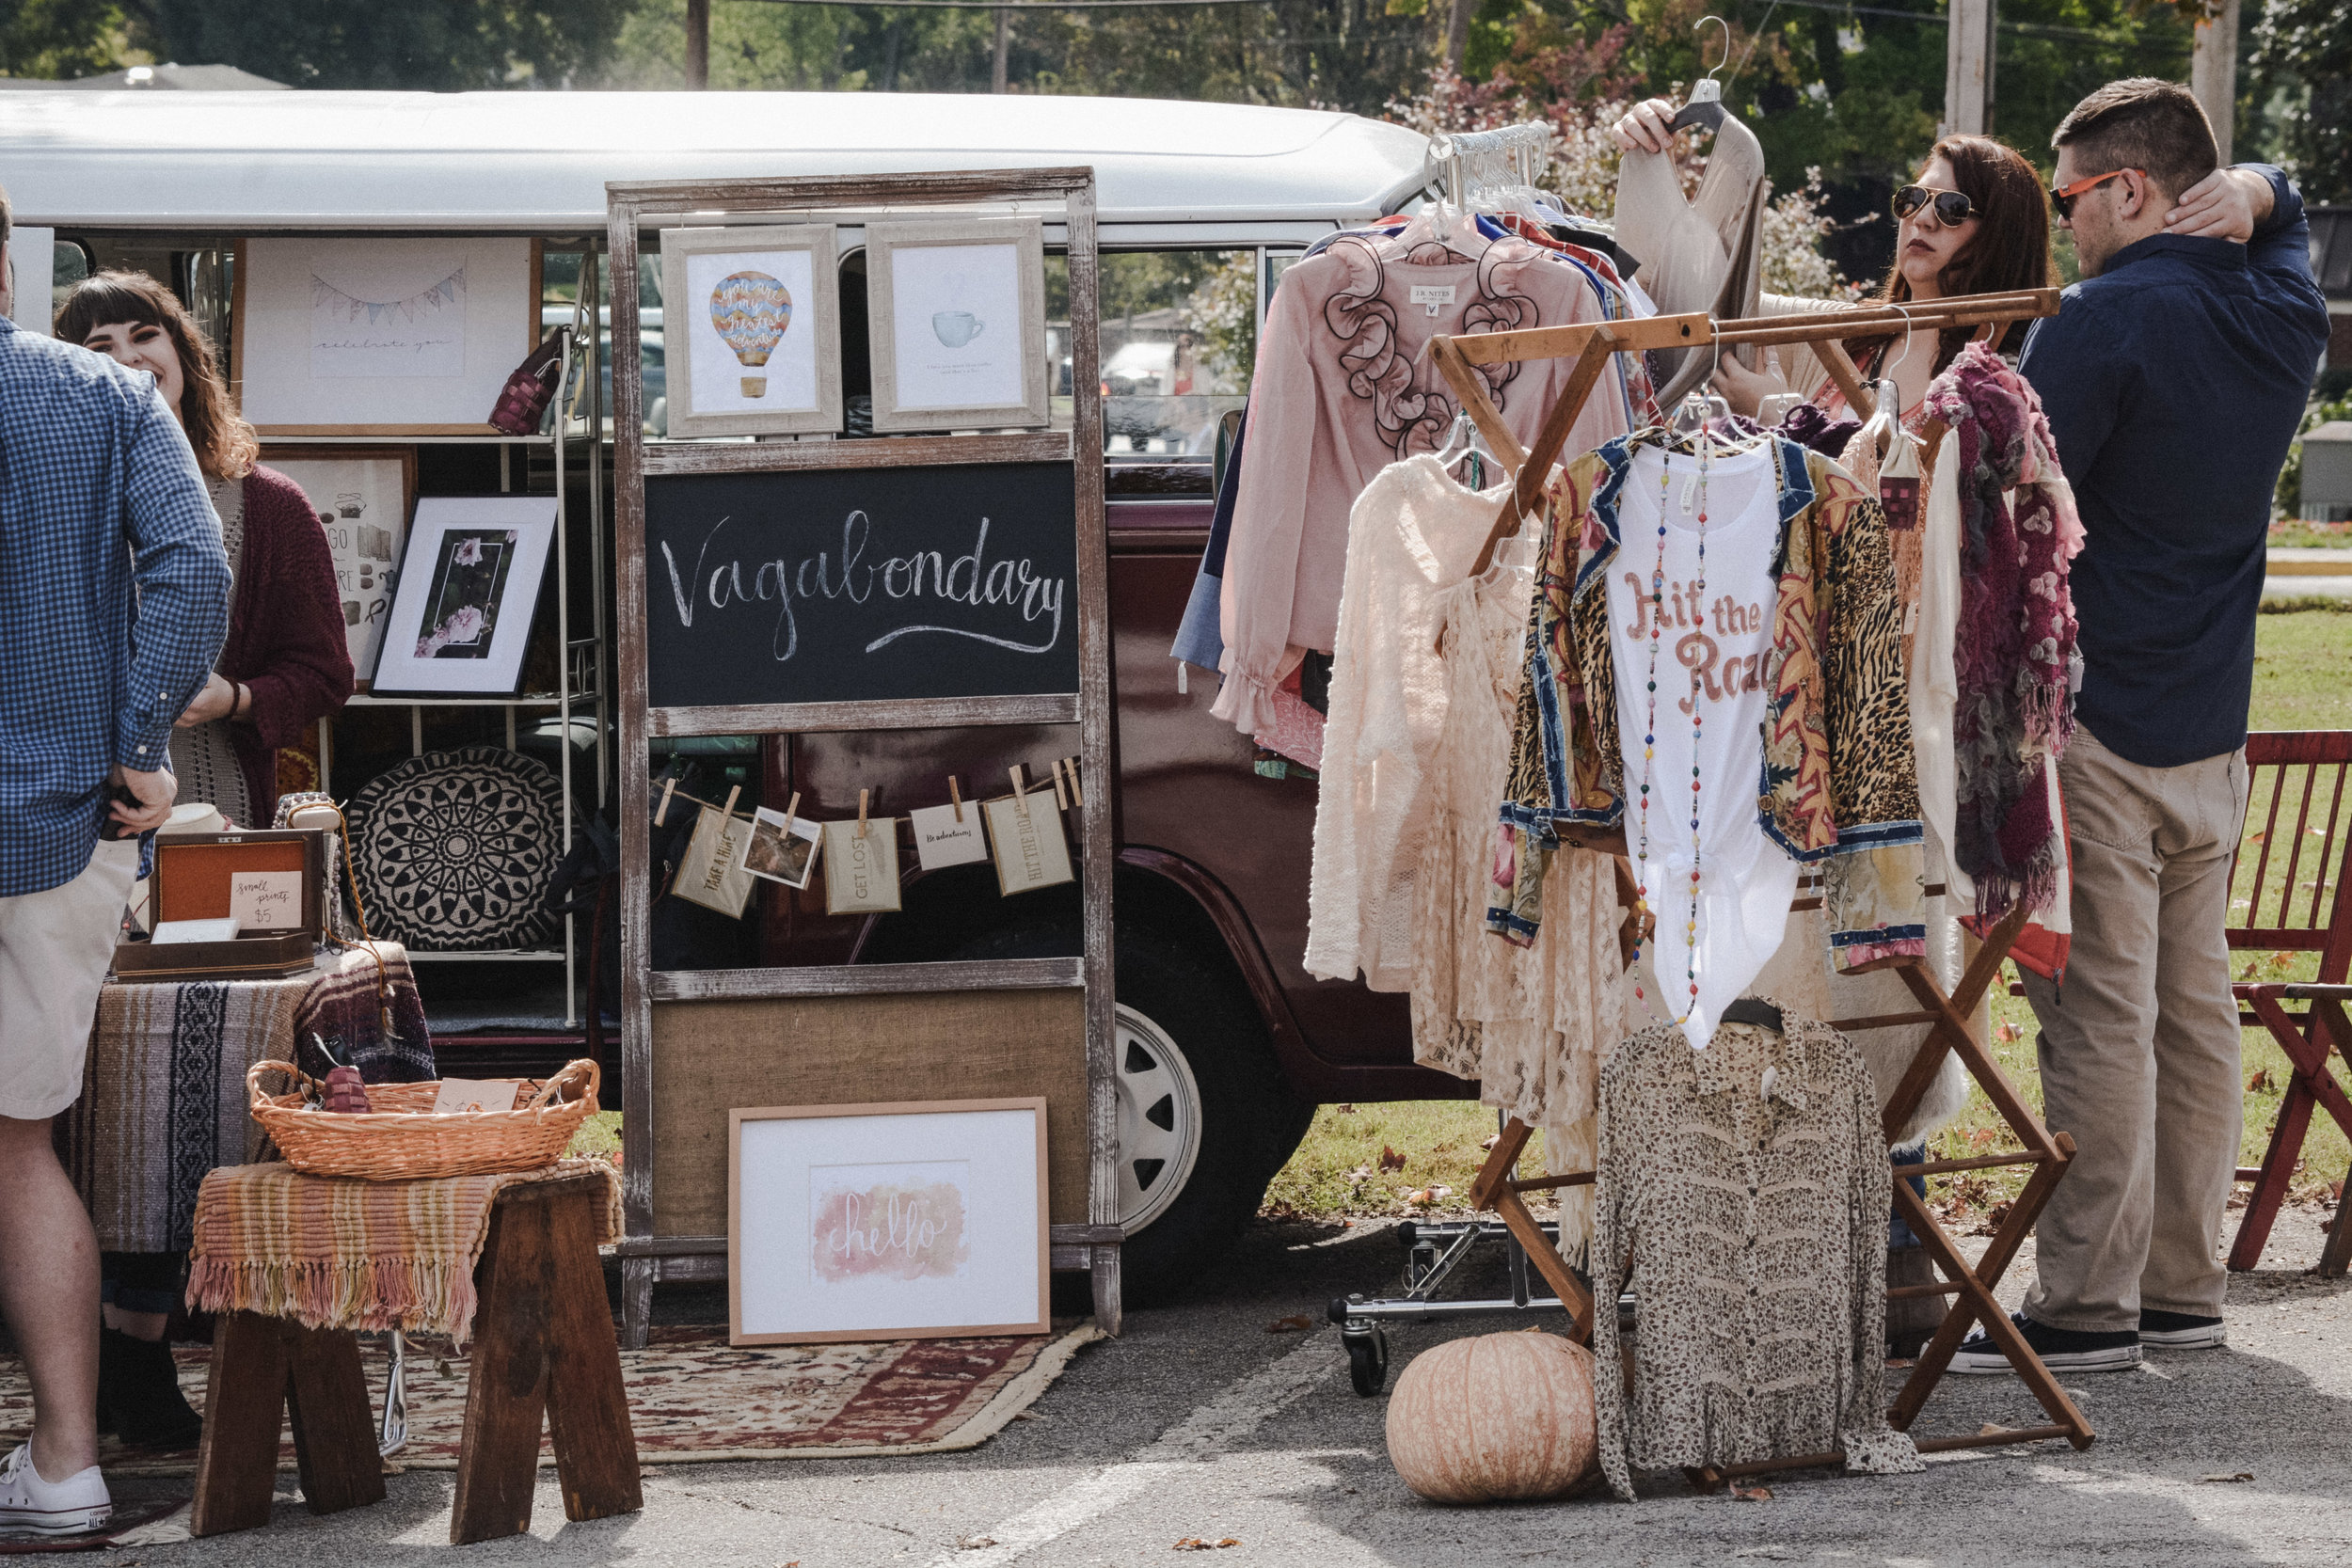 on the road. - The Vagabondary Bus popup shop made its debut appearance at the Mossy Creek Festival. It was terrifying and exhilarating to bring my art and style to face the public, and the response was amazing. Look out for the Vagabondary Bus in 2018 and read more about its story here.